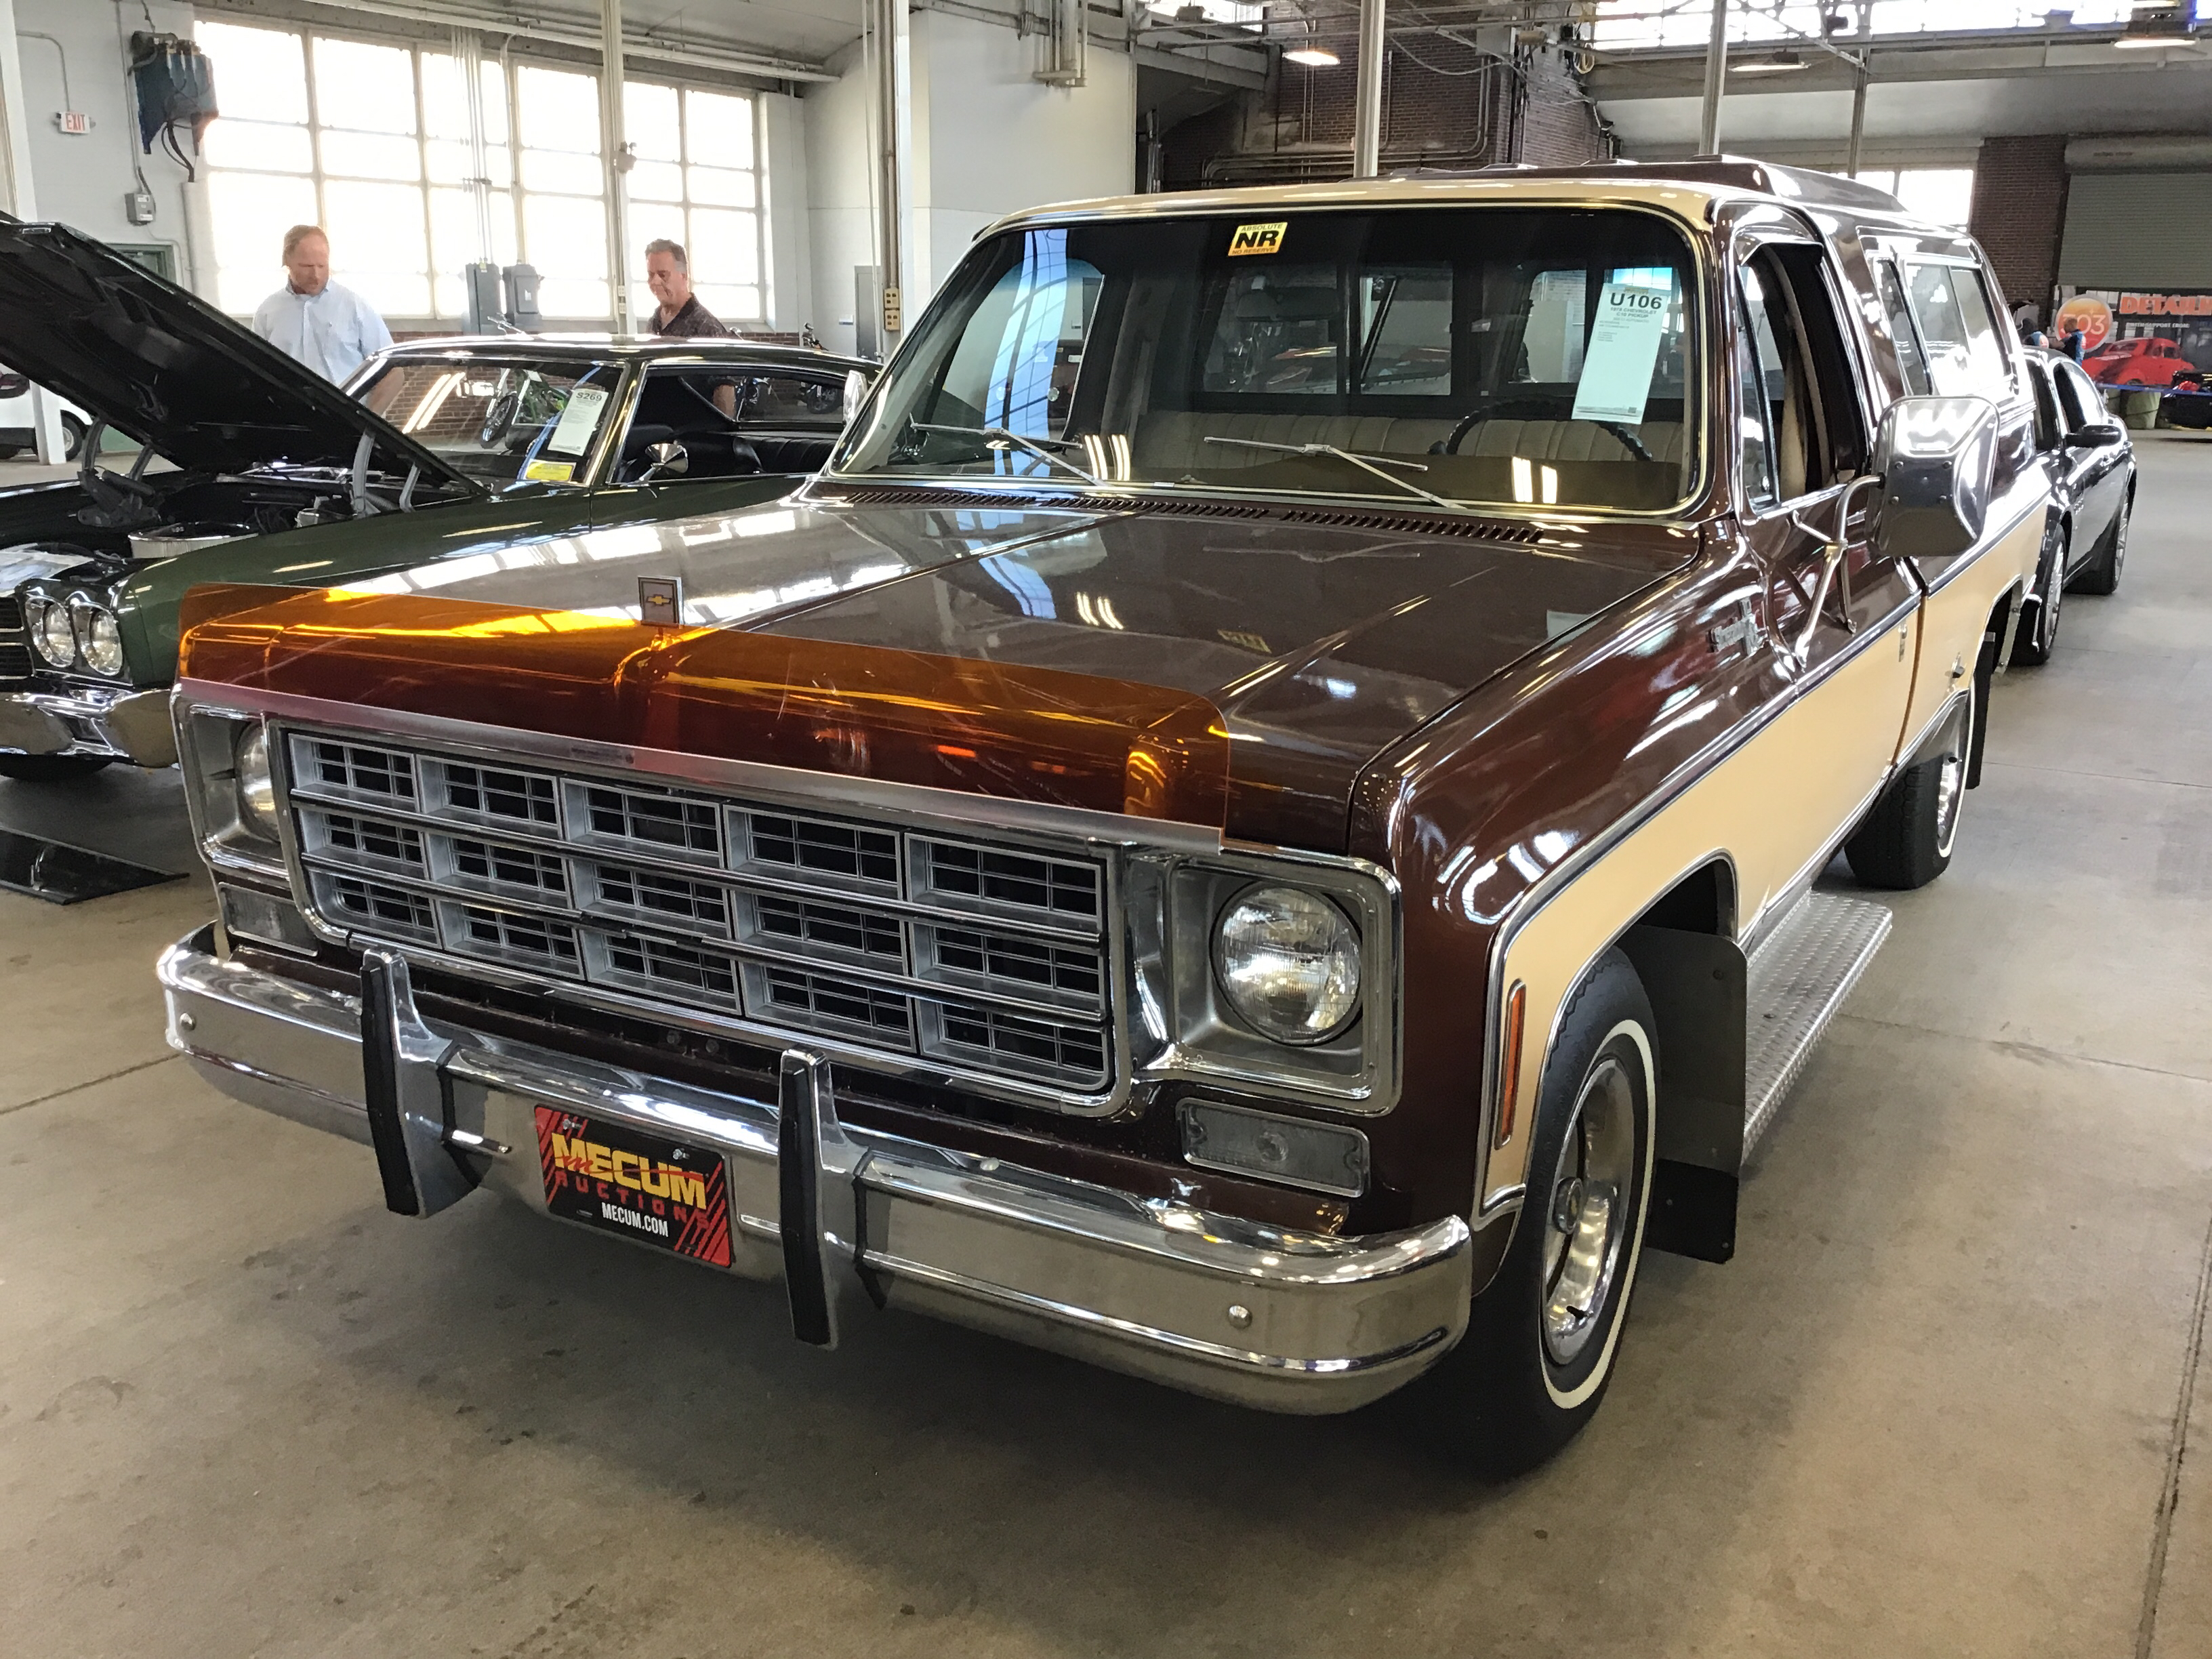 1977 Chevrolet C30 1 Ton Values | Hagerty Valuation Tool®